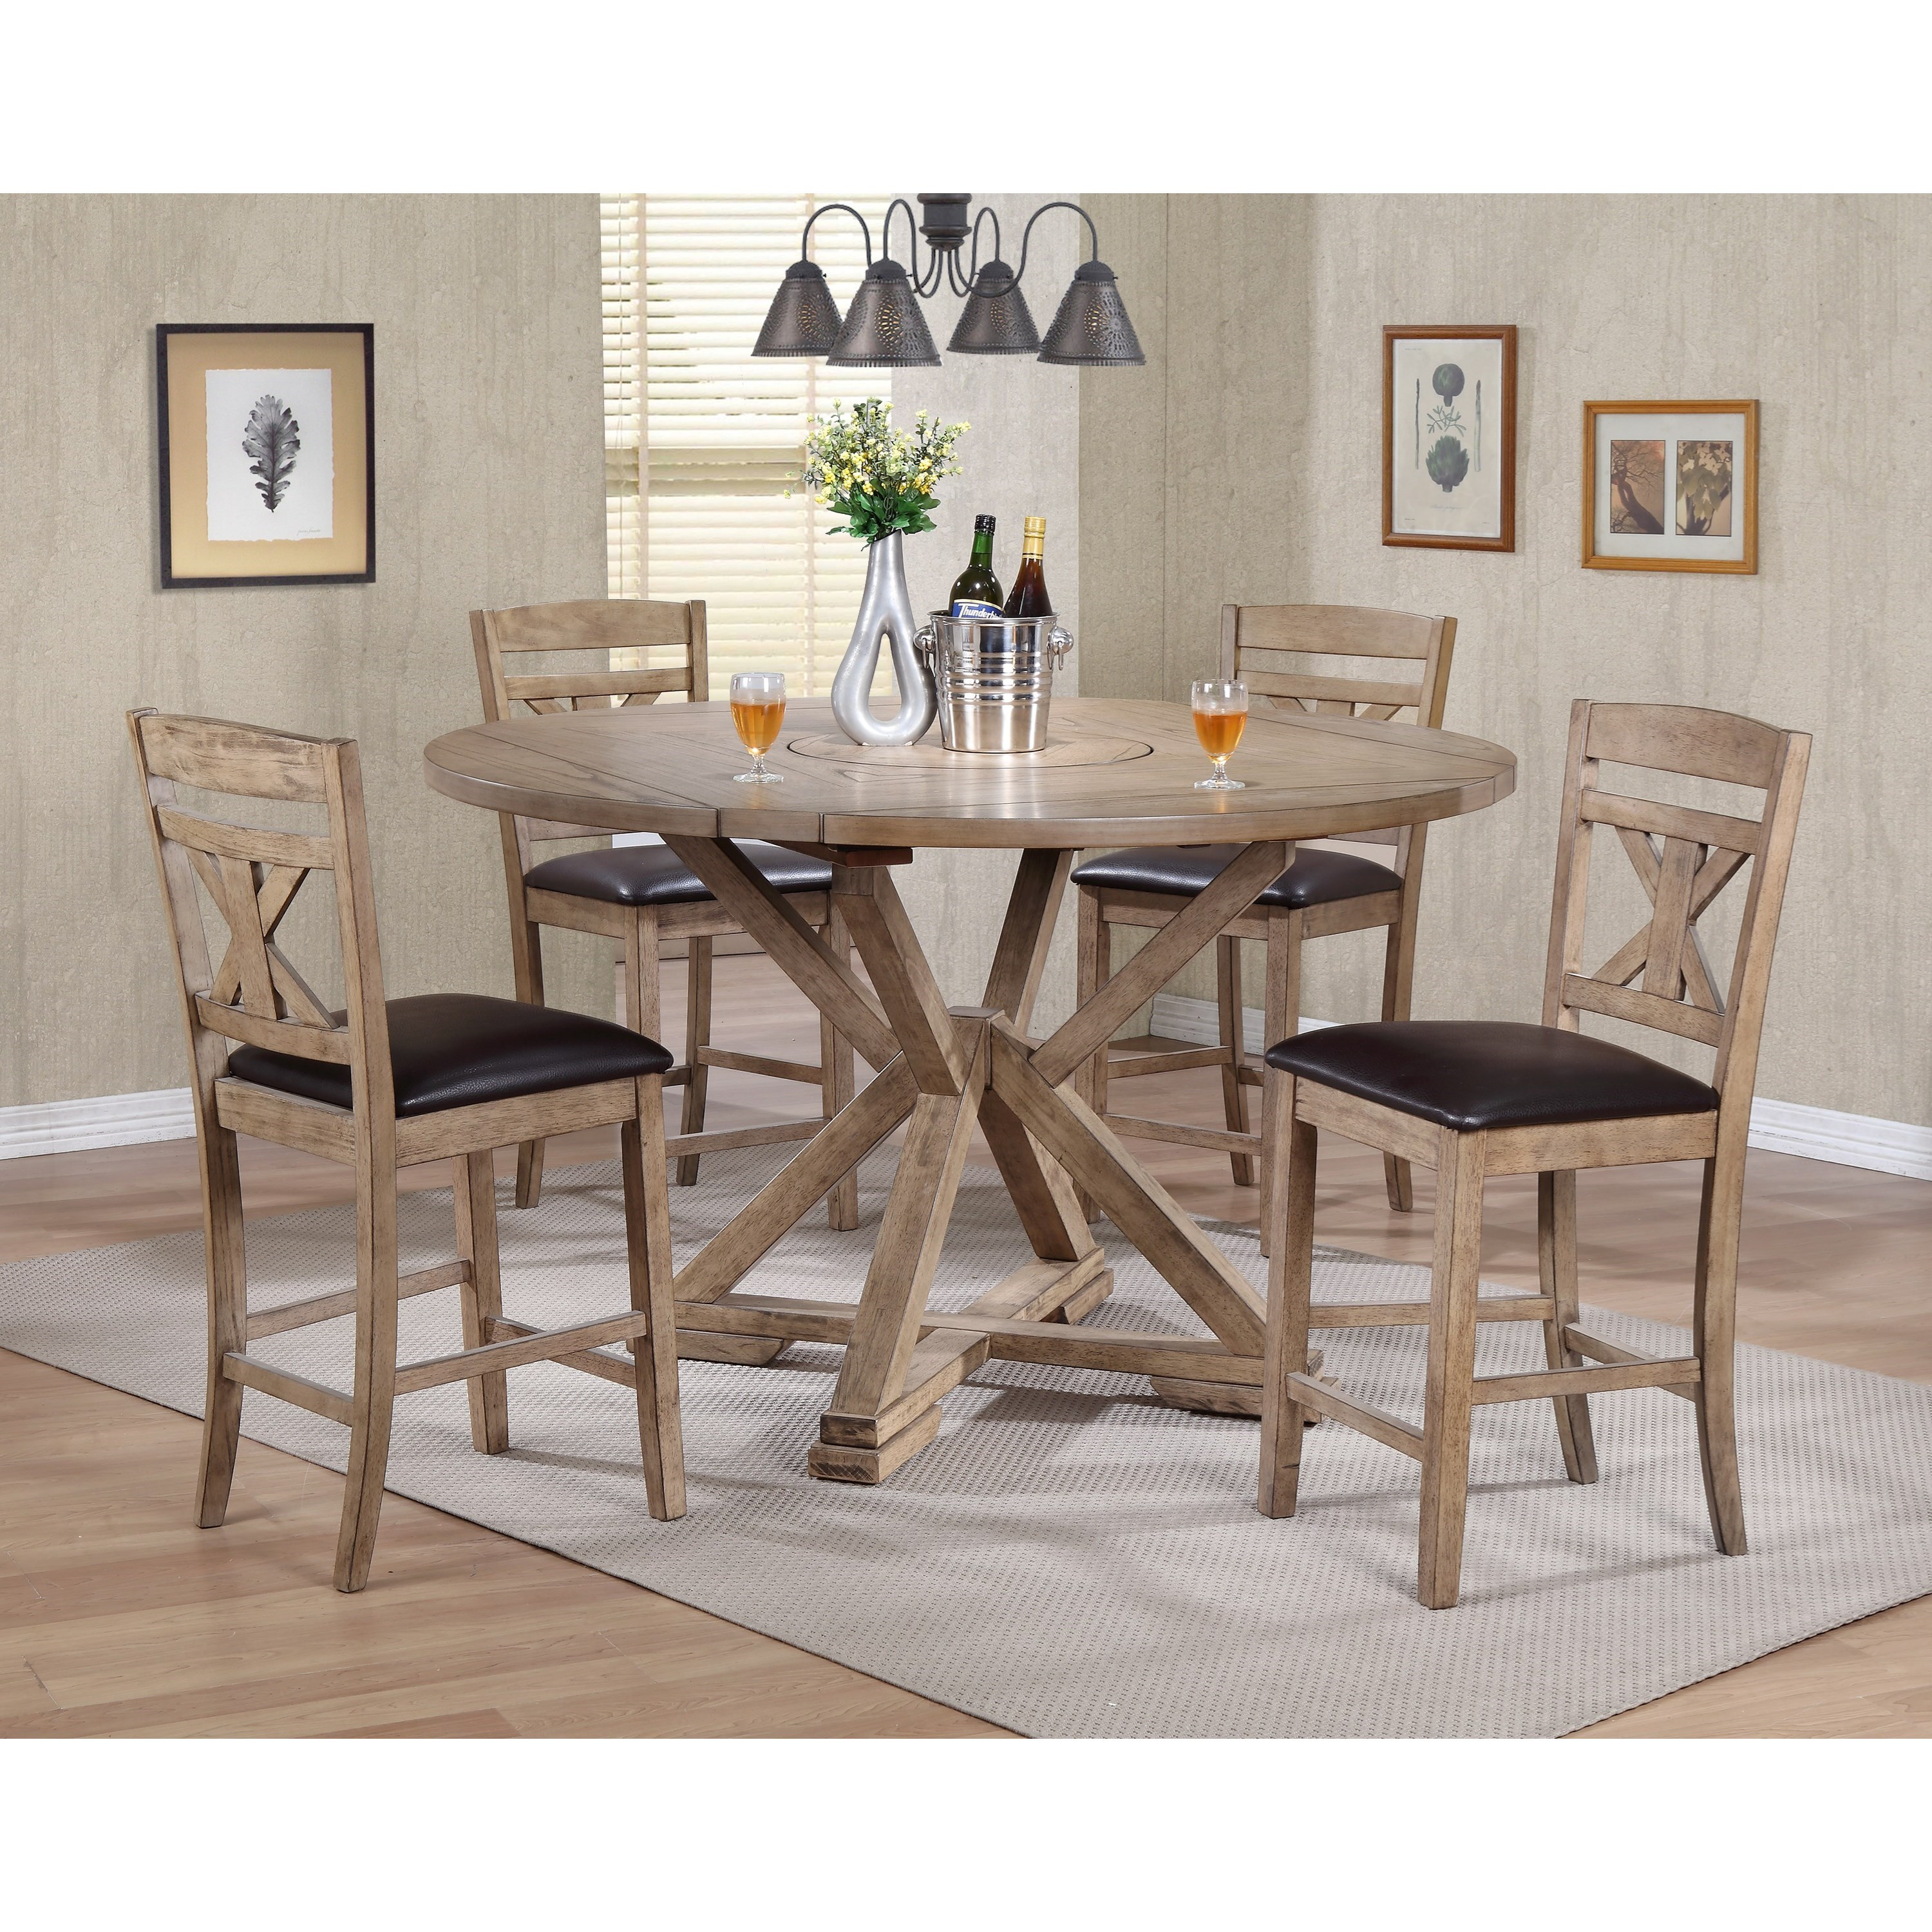 Grandview 5 Piece Counter Height Dining Set